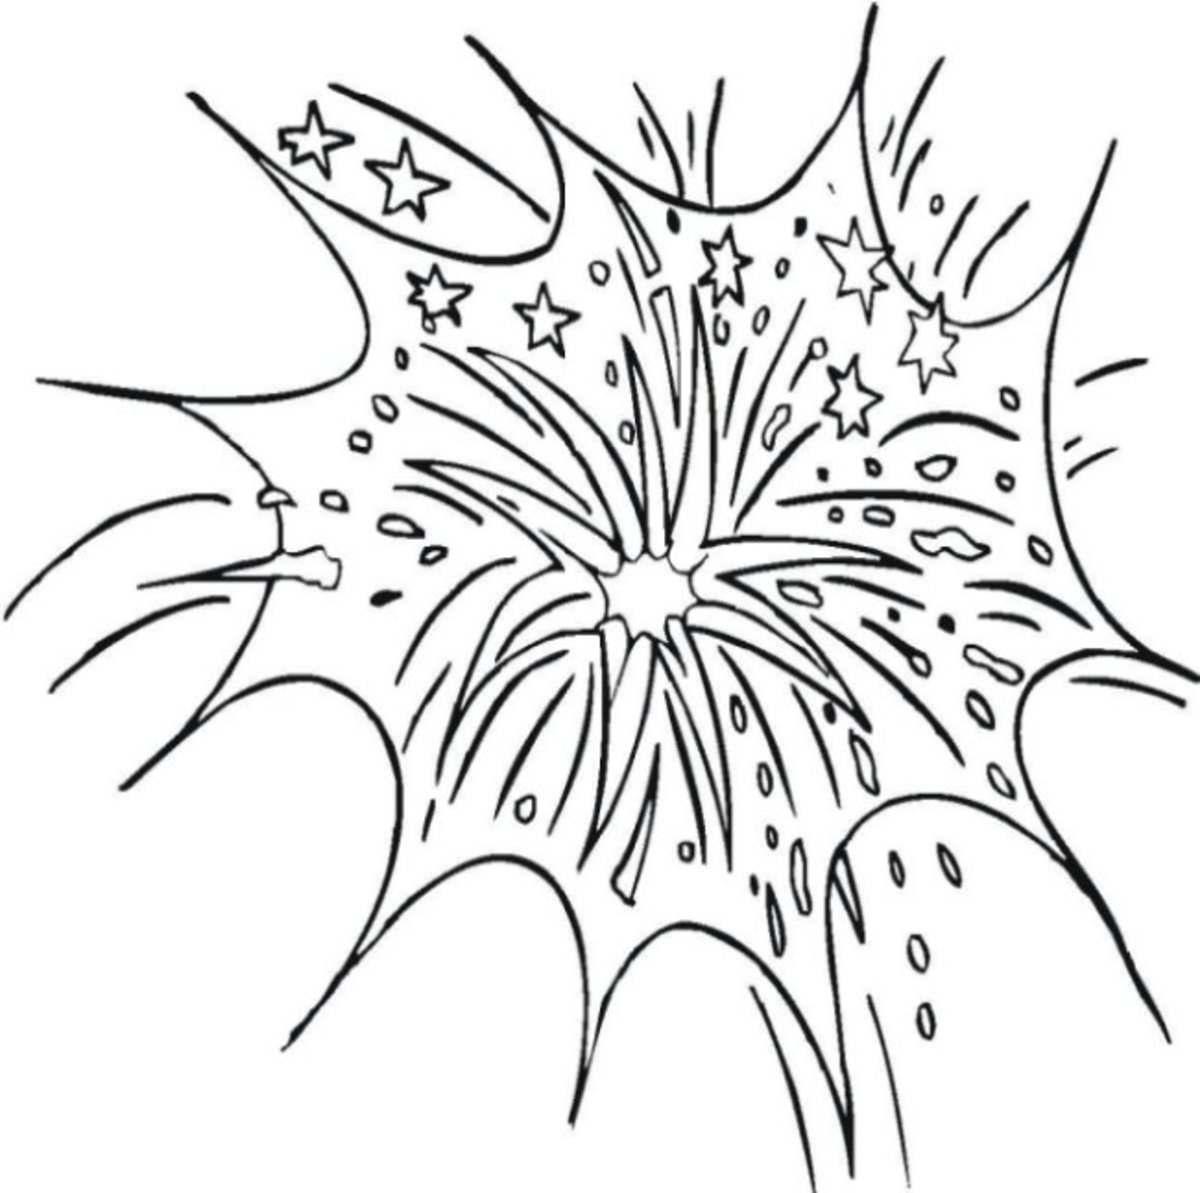 patriotic america 4th-of-july kids coloring pages and free